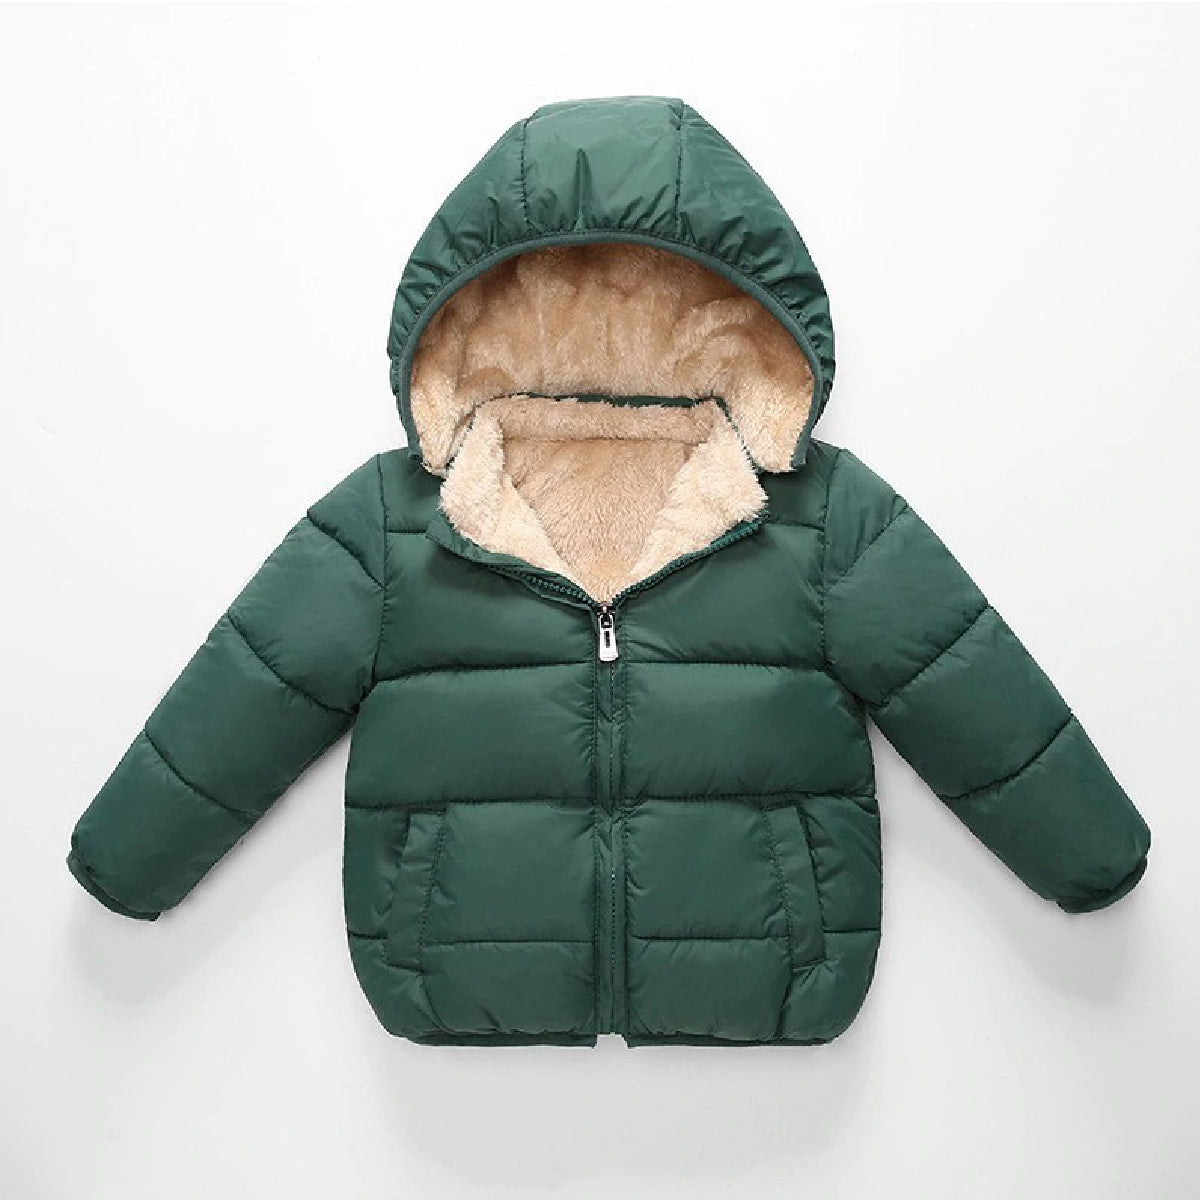 Baby Zone Snugly Jacket ™